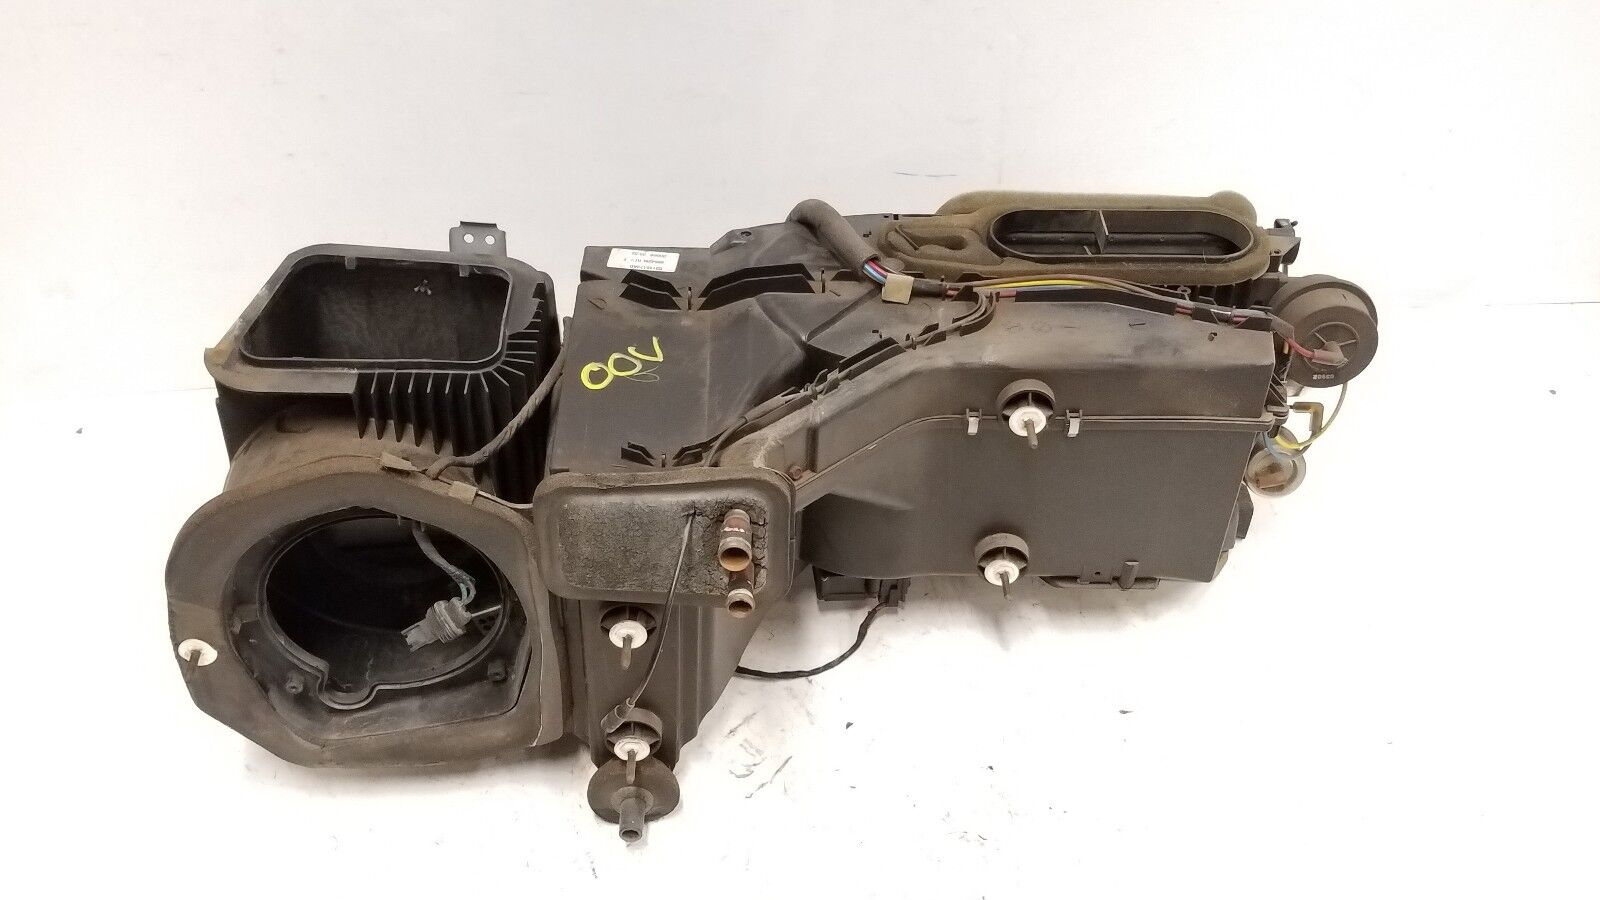 Jeep Wrangler Tj Heater Box Wiring Harness Fan Relay Used 1999 Air Conditioning And Parts For Sale Housing 2001 Blower Unit No 00v